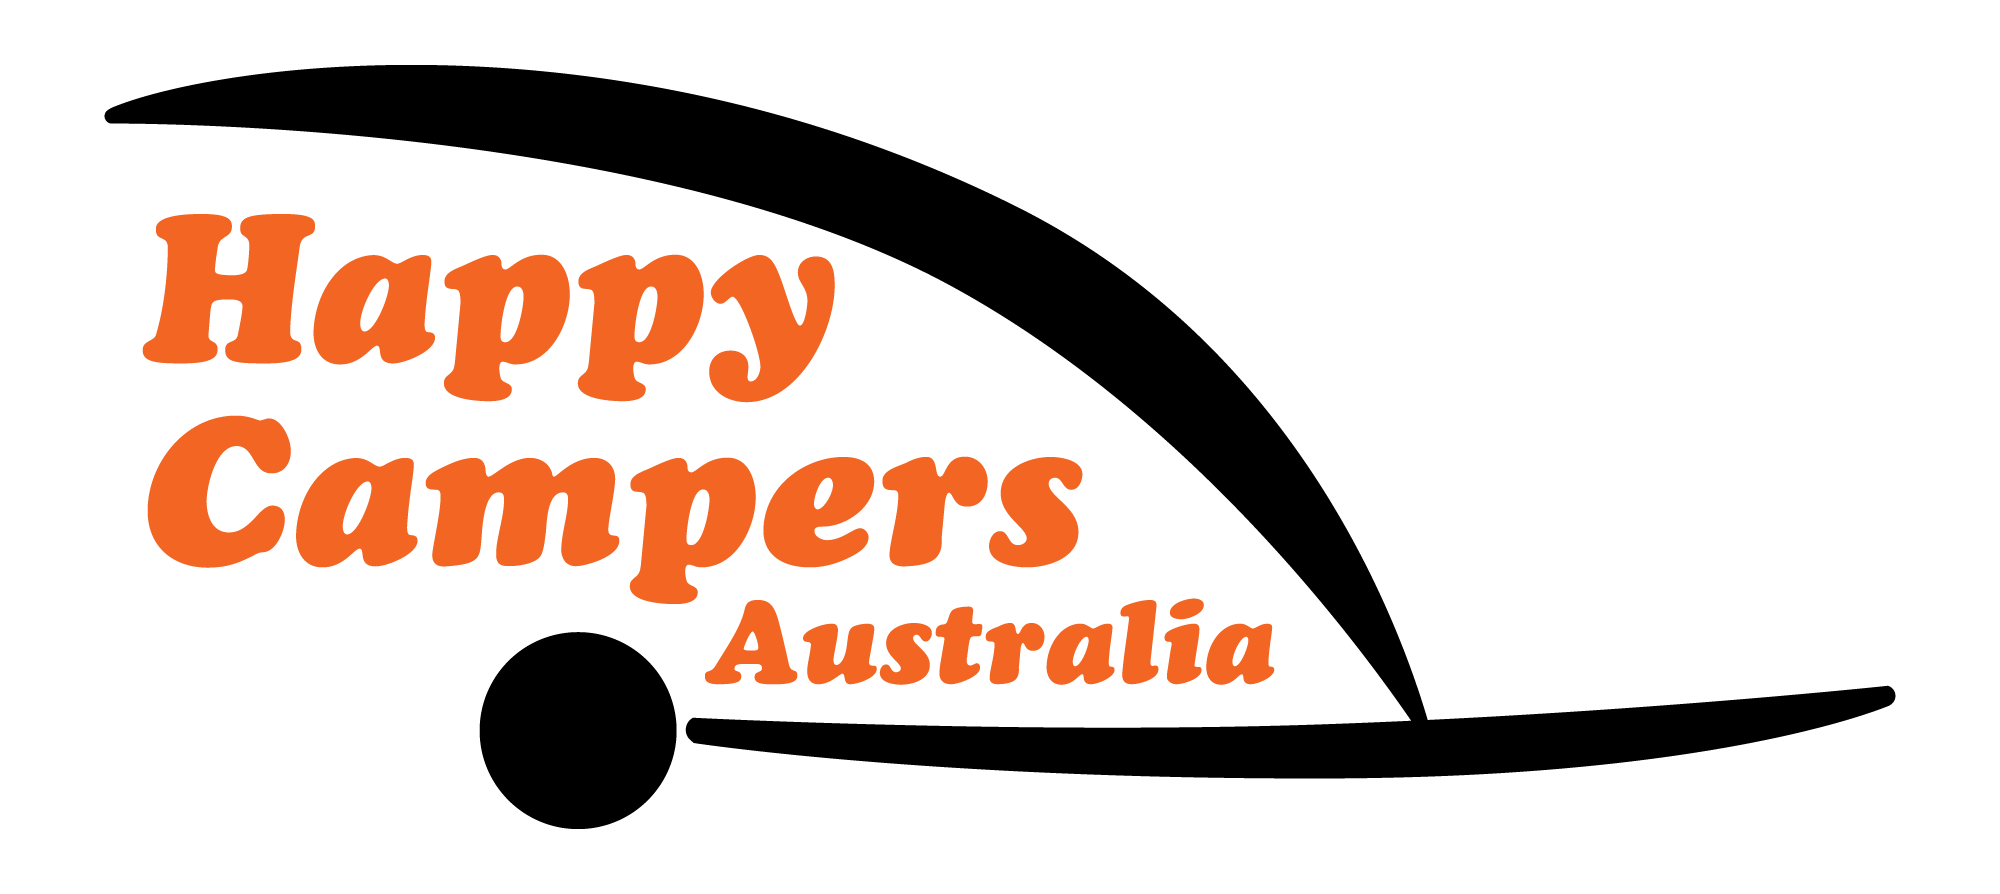 Happy Campers Australia